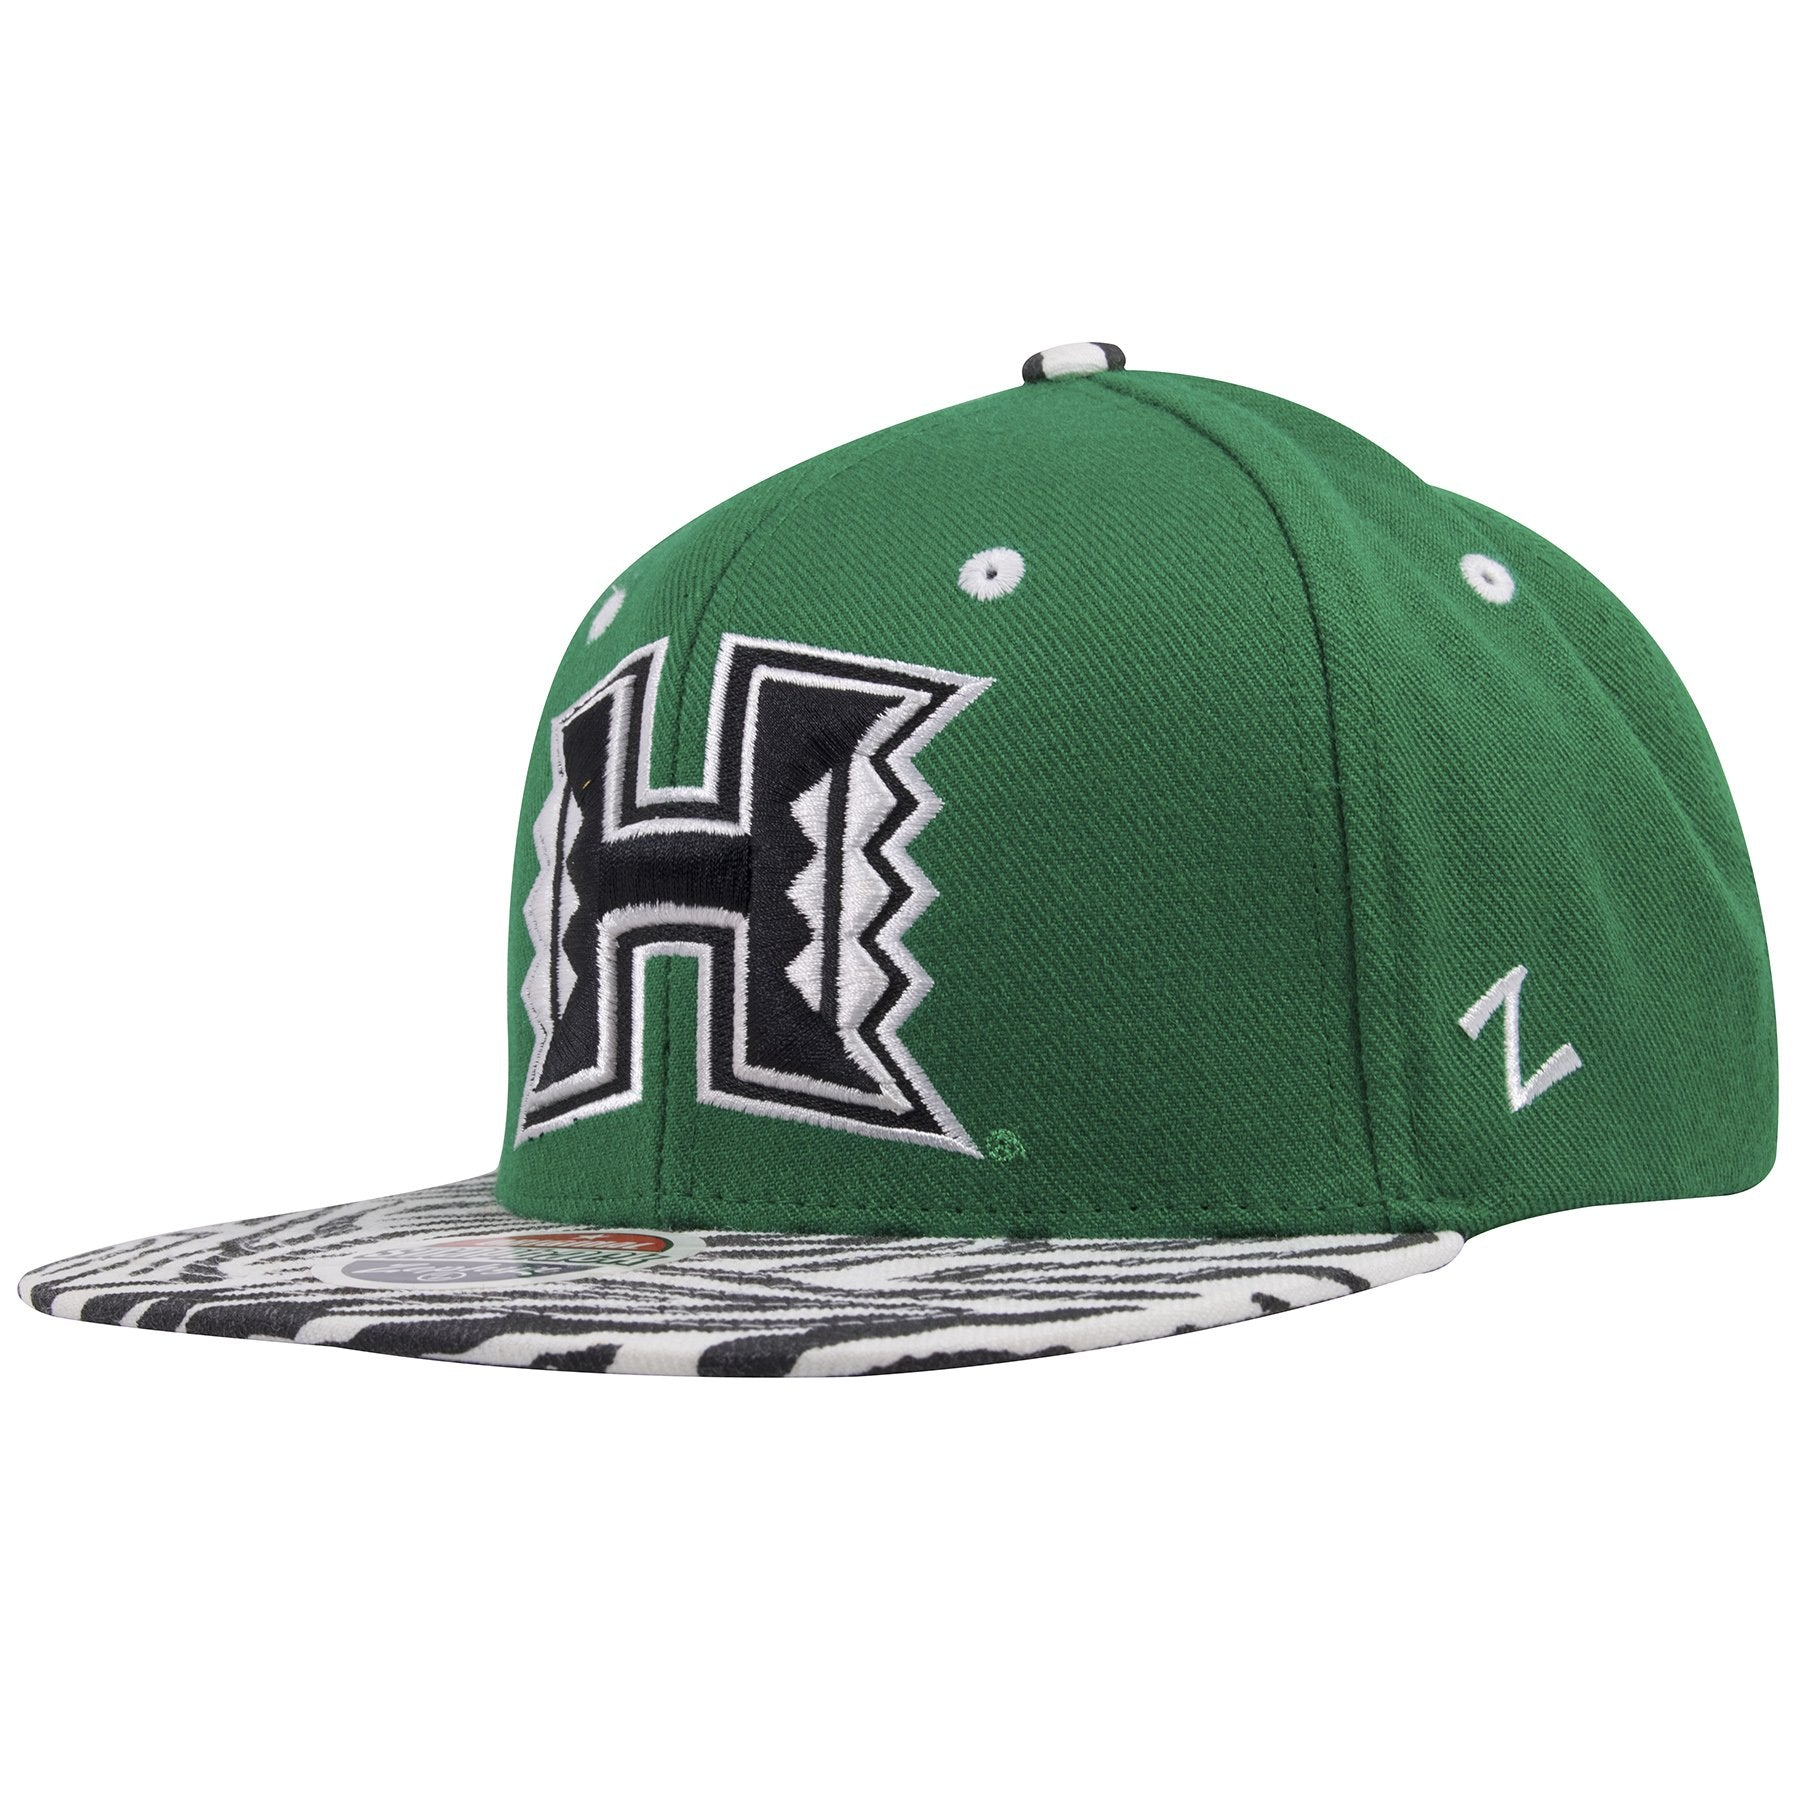 ... on the left side of the university of hawaii rainbow warriors snapback  hat is a white ... 8deb717d1e6d